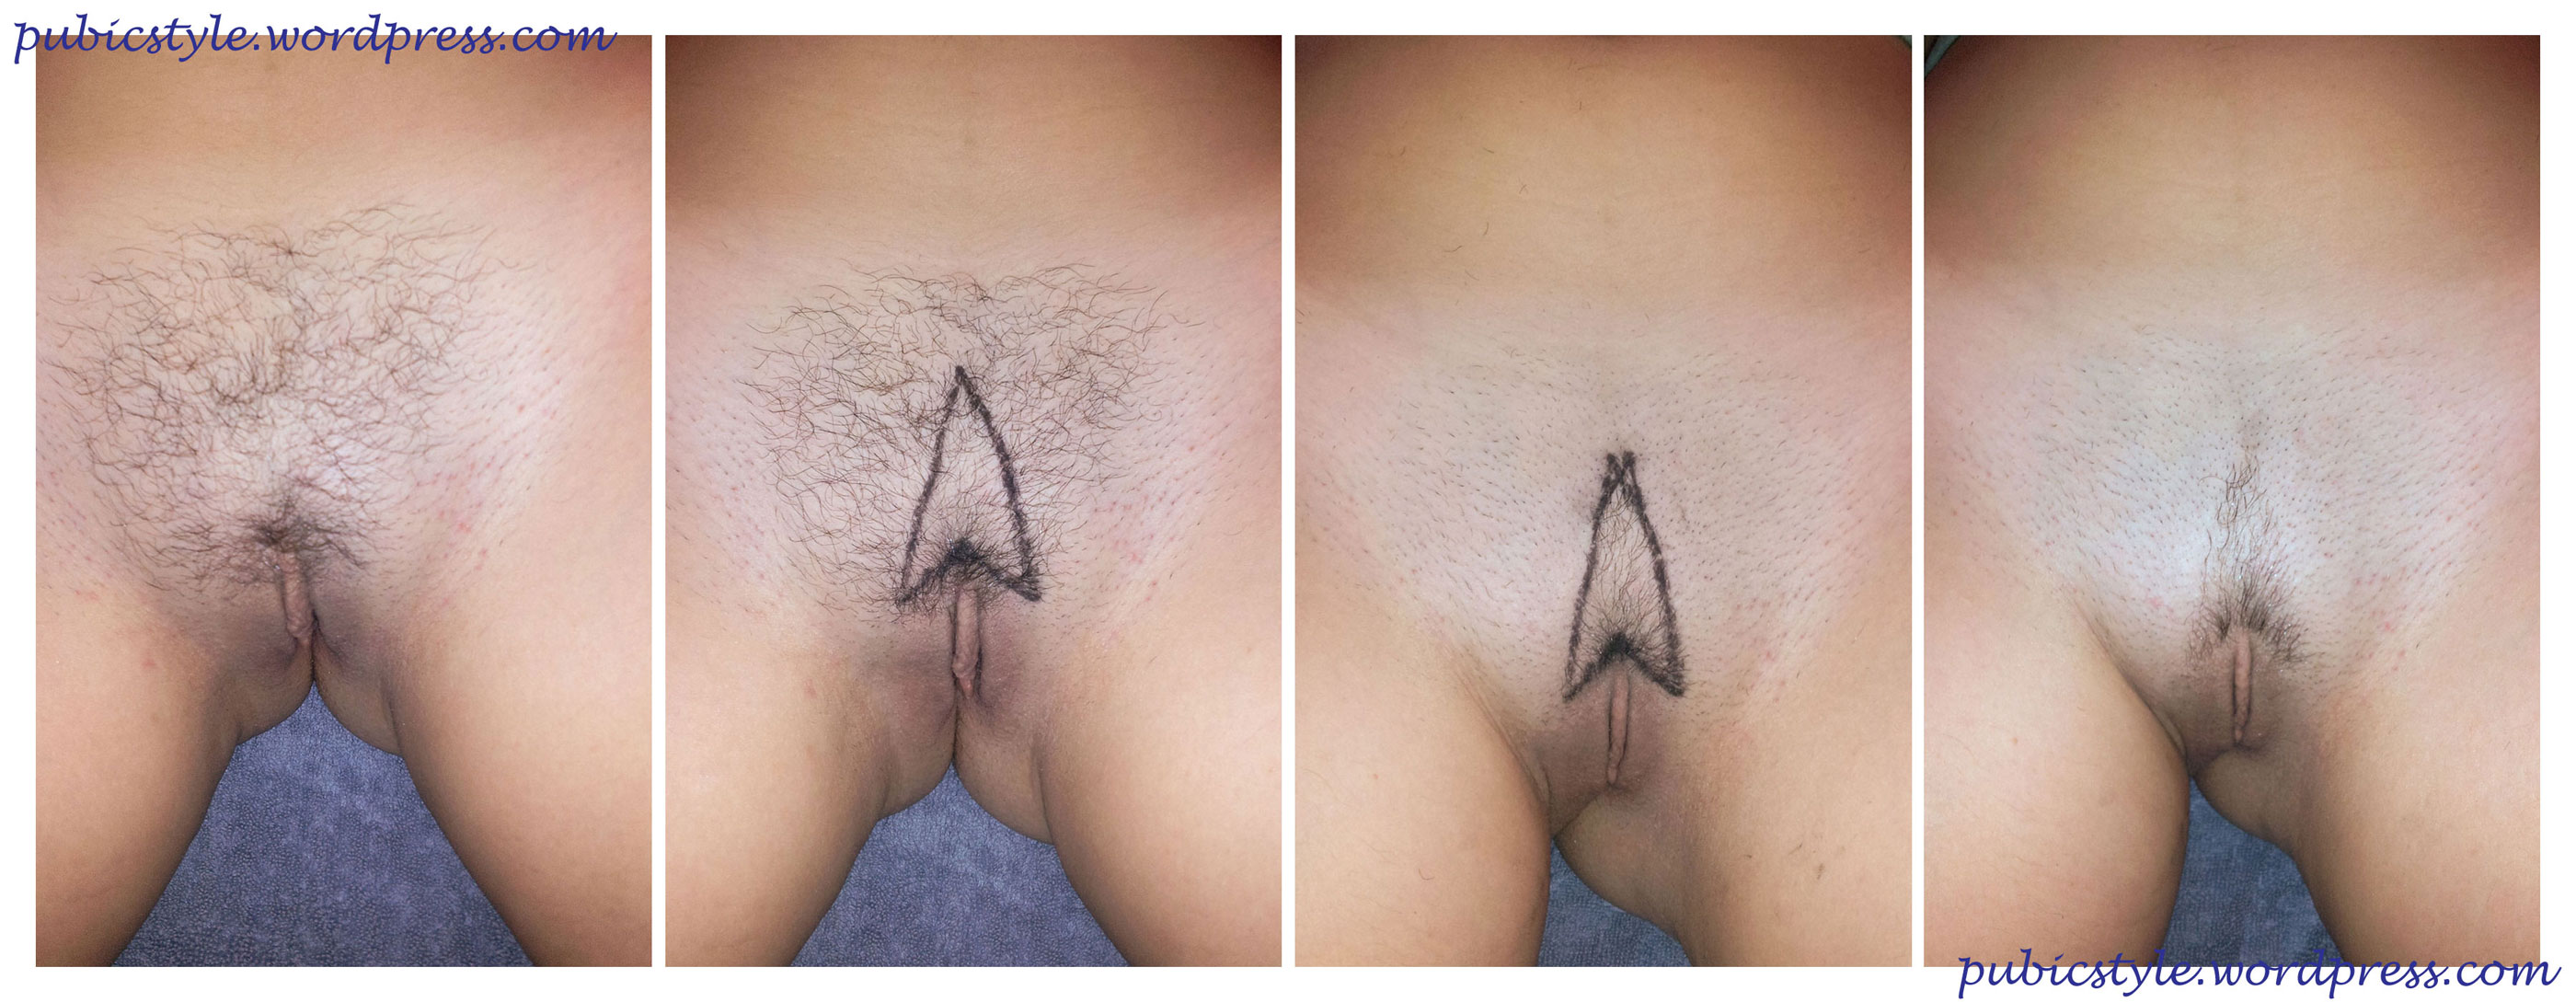 Picture of shaved pubic area